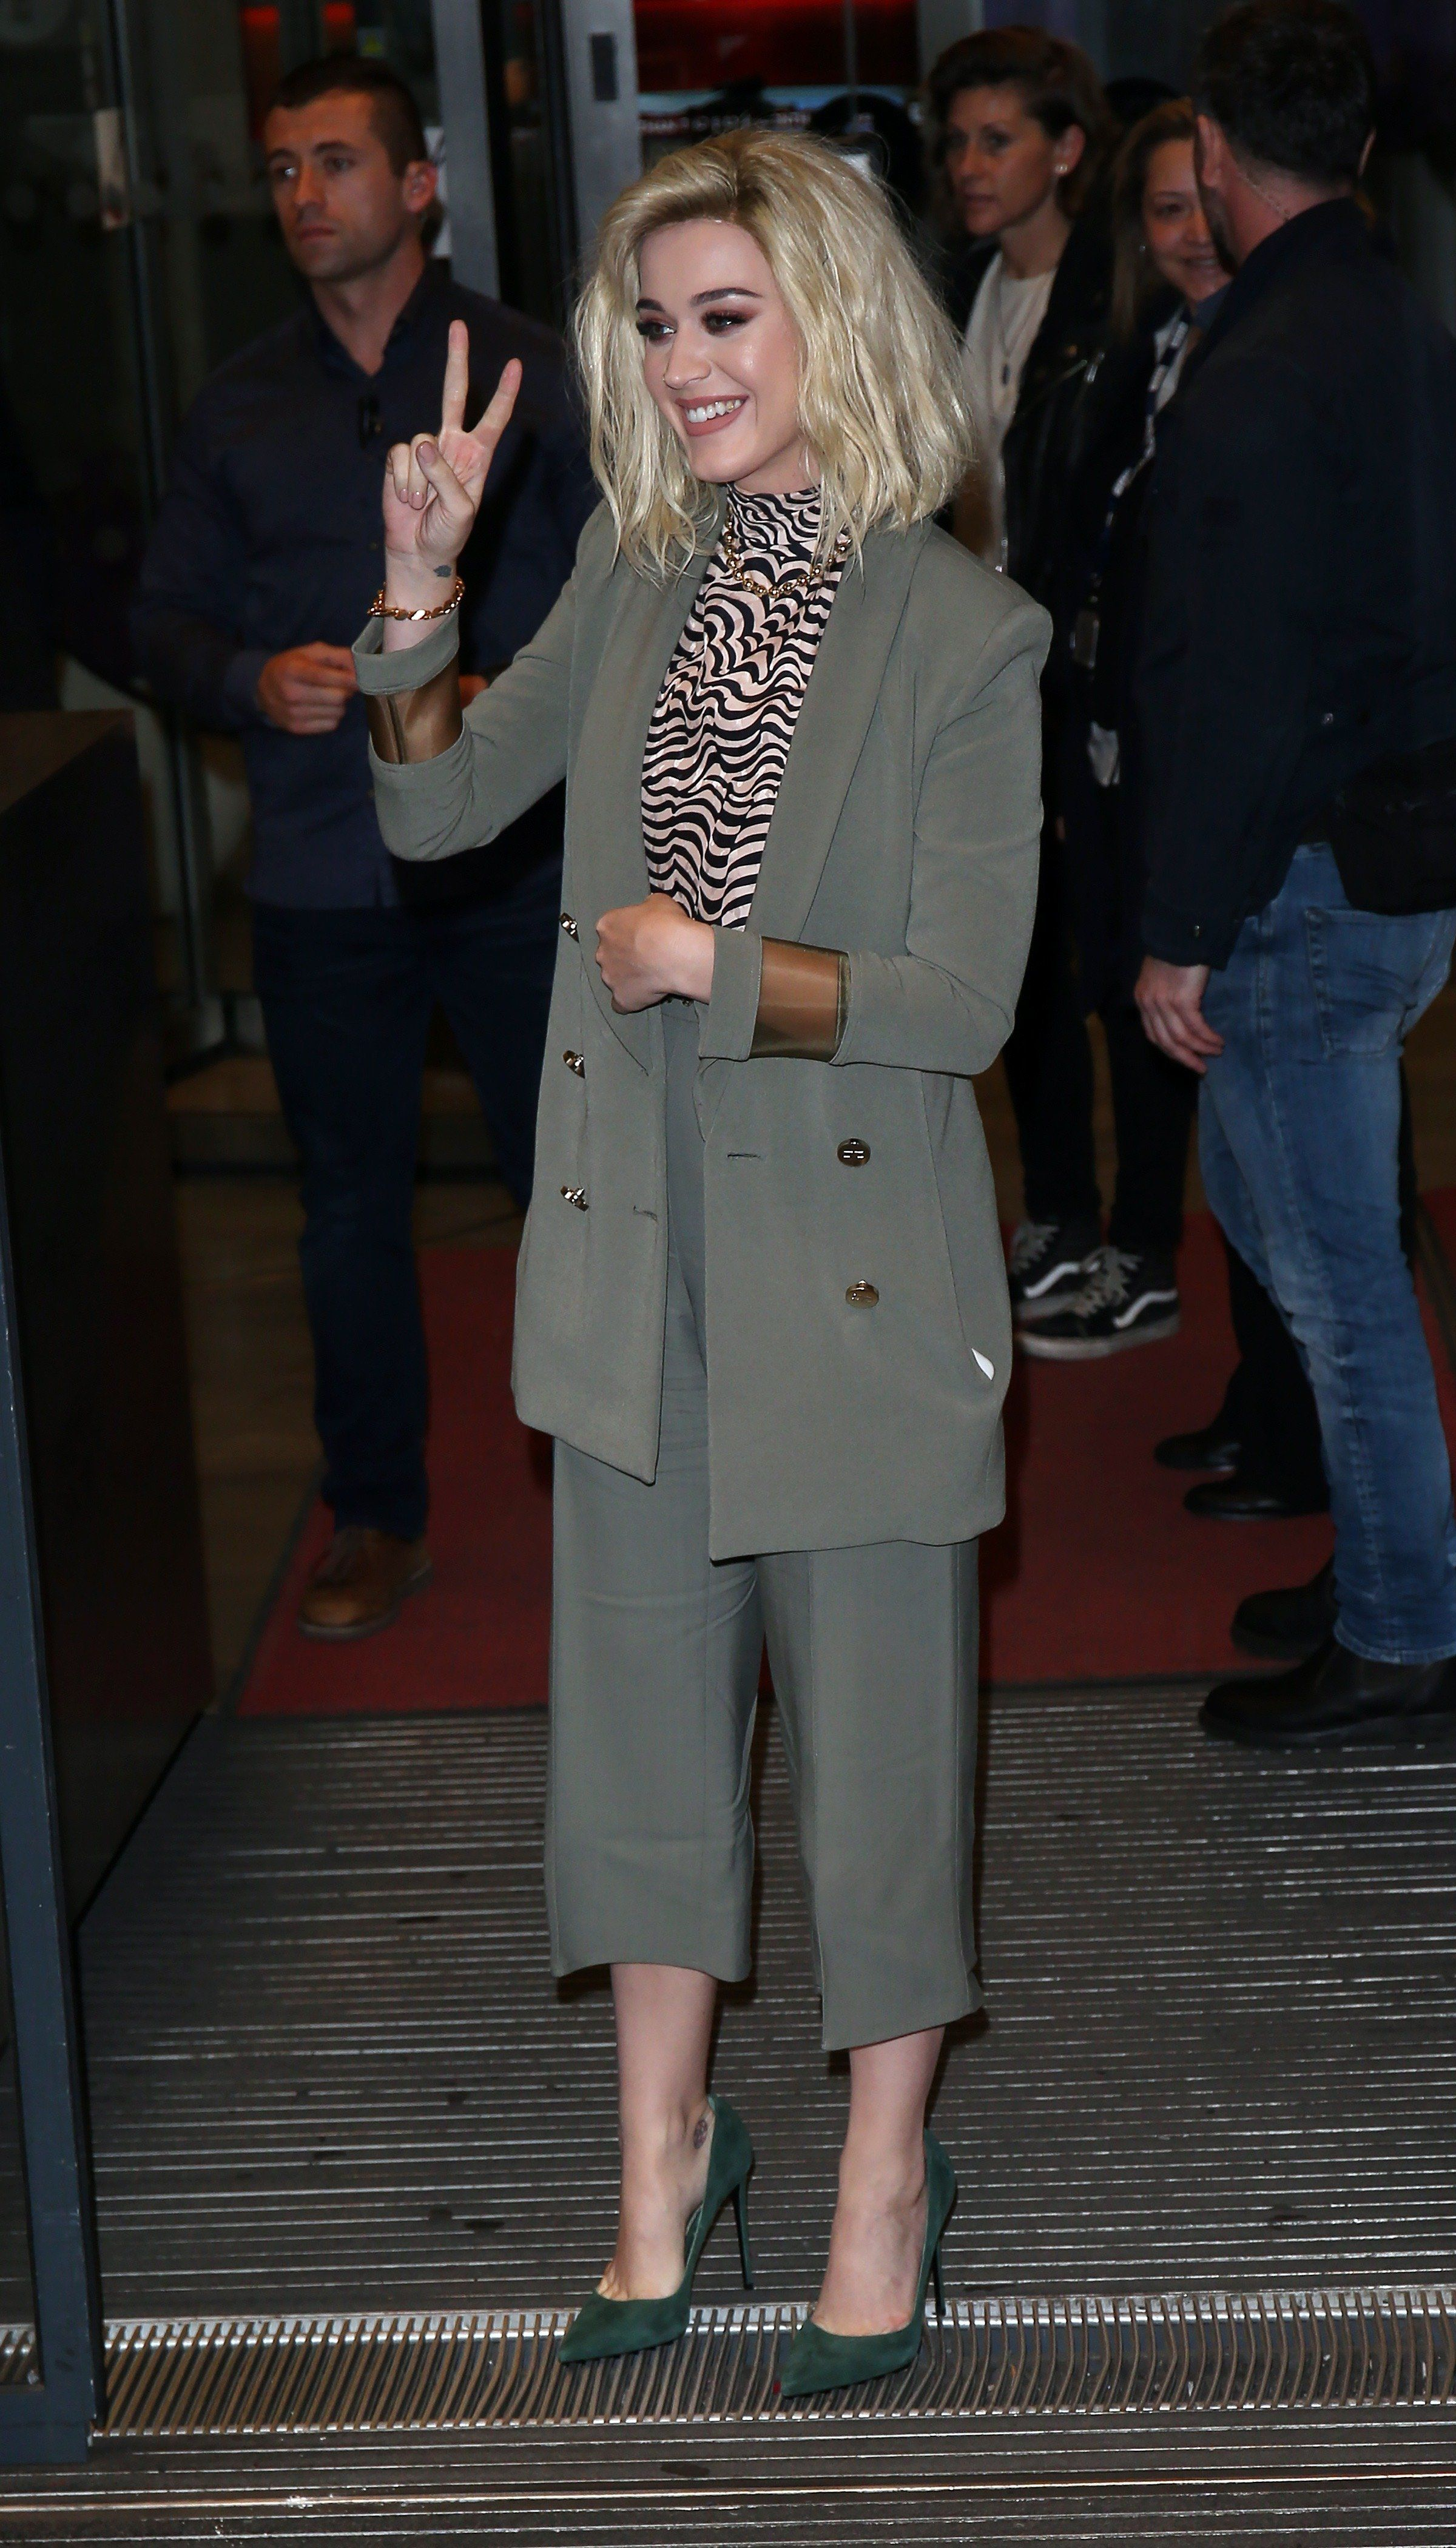 Katy Perry seen at BBC Radio One on Feb. 21.